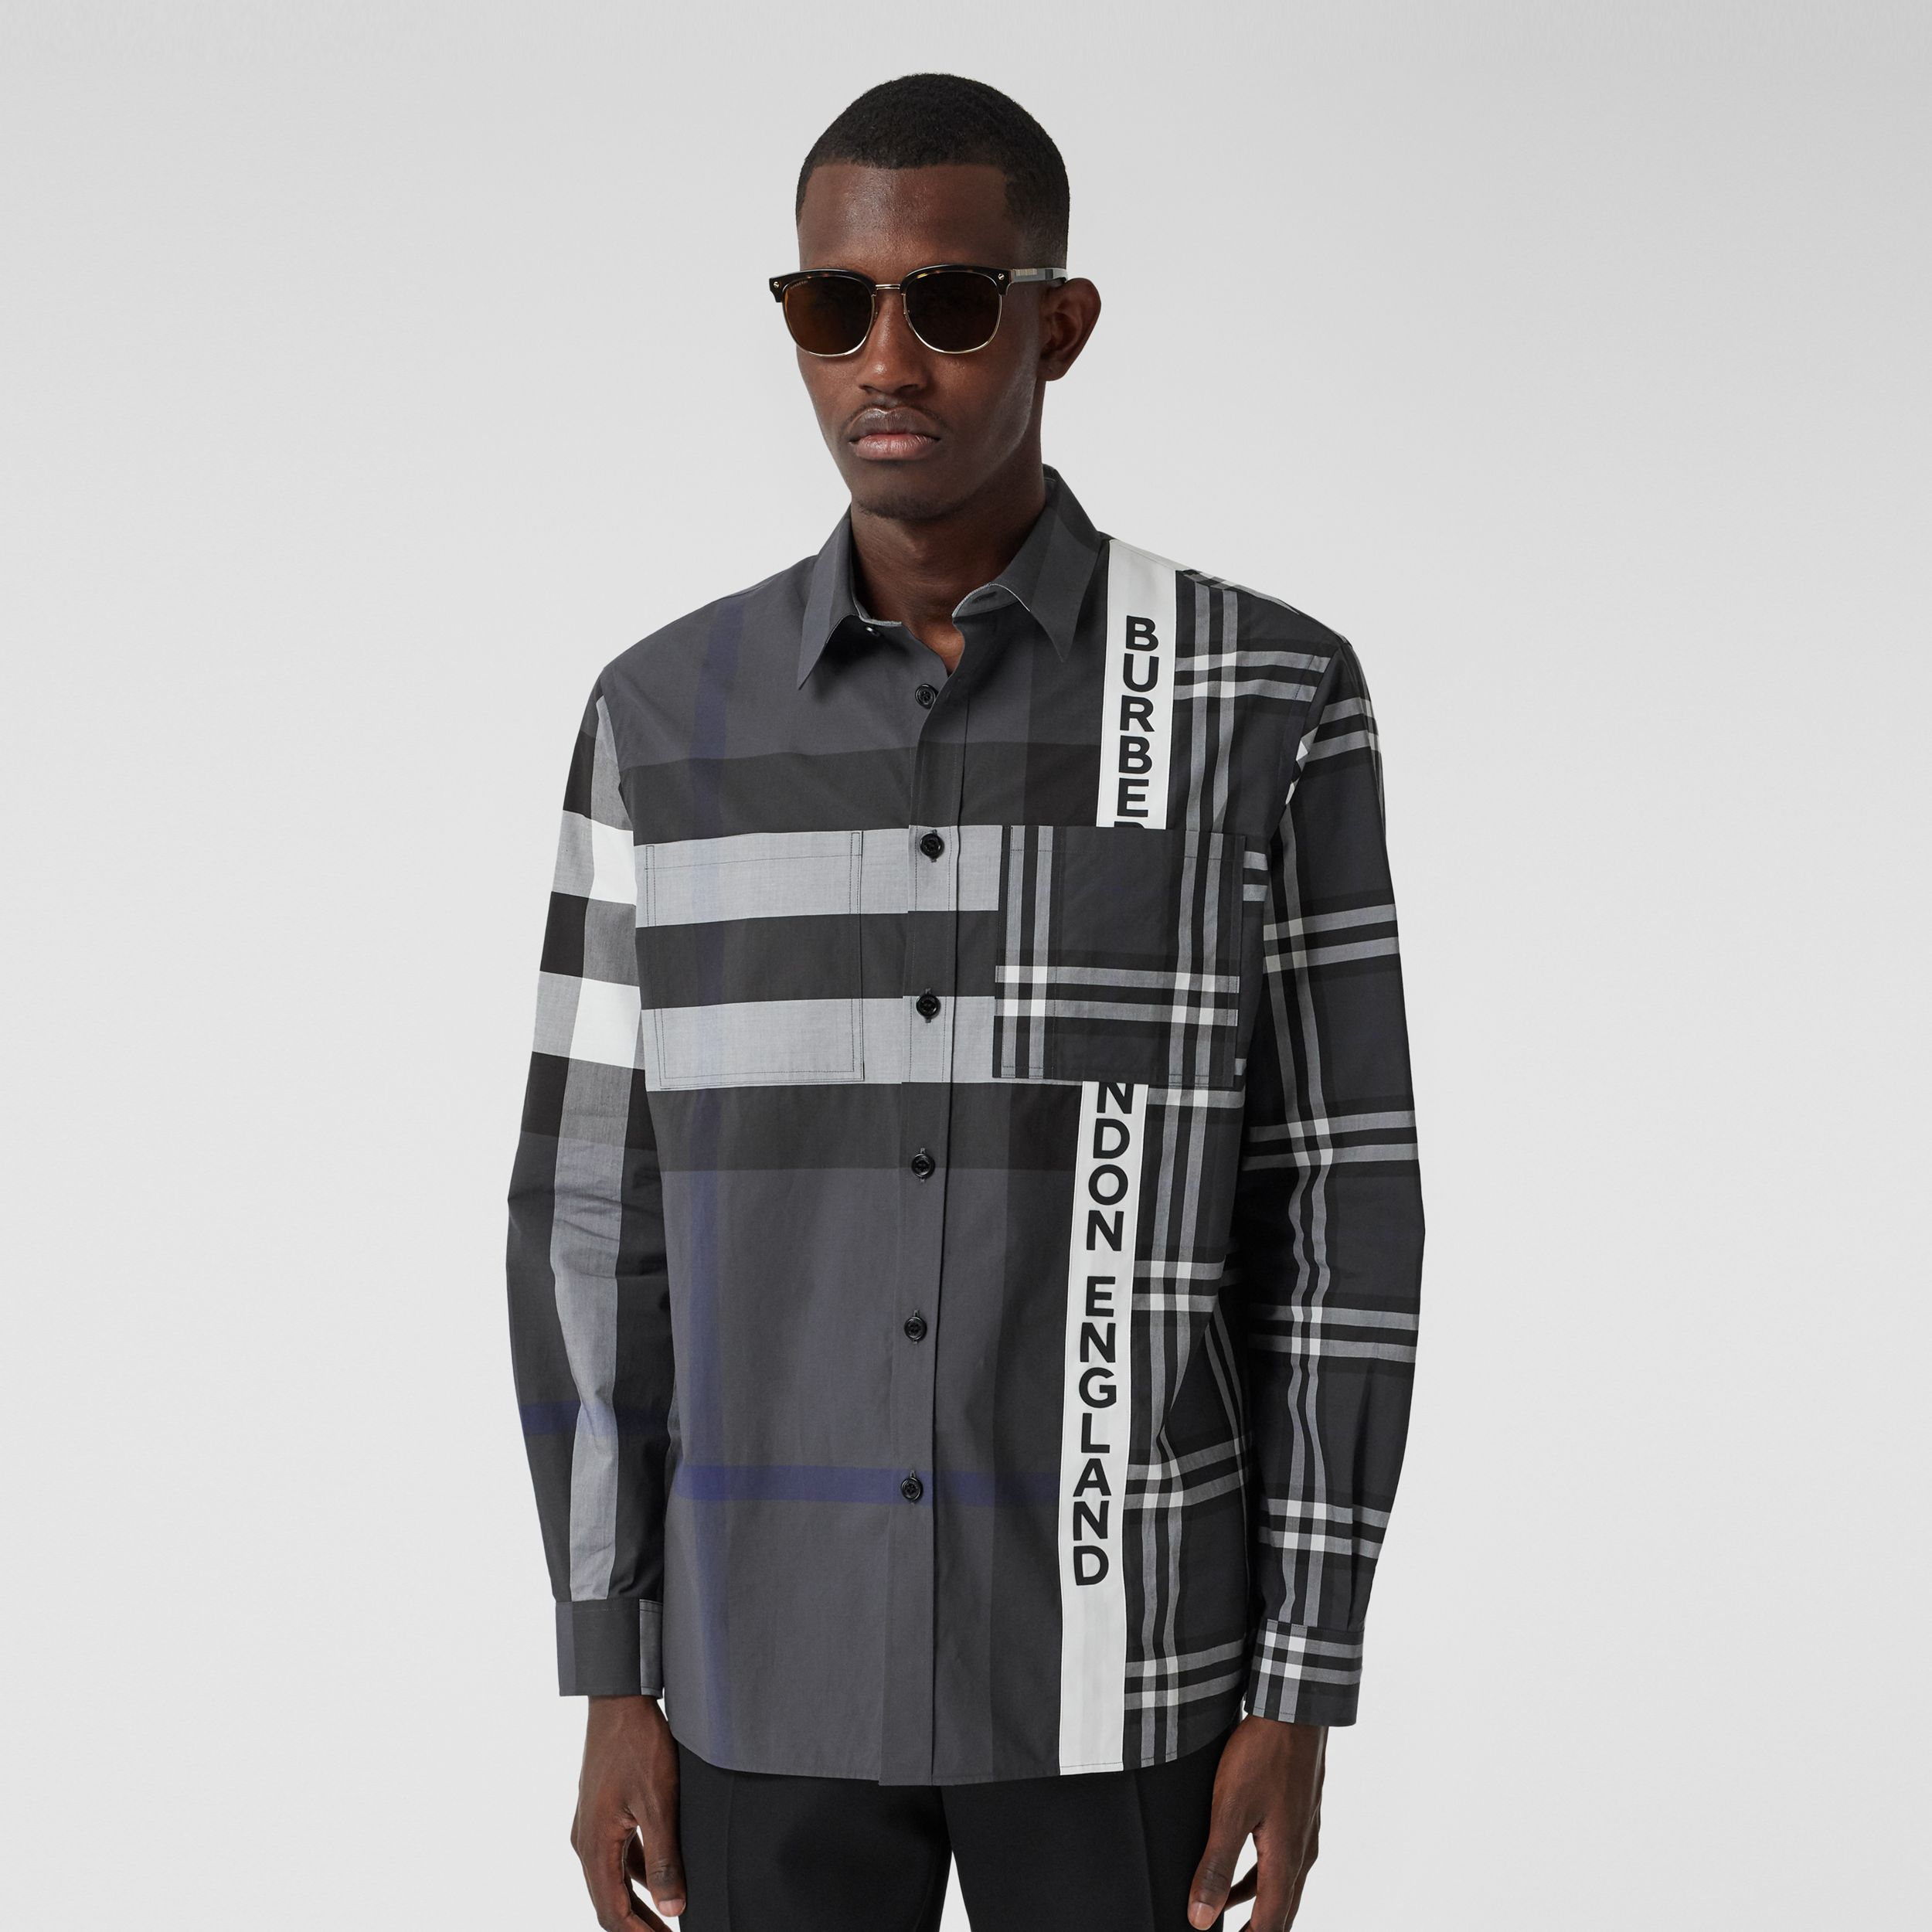 Logo Print Patchwork Check Cotton Oversized Shirt in Dark Pewter - Men | Burberry - 1